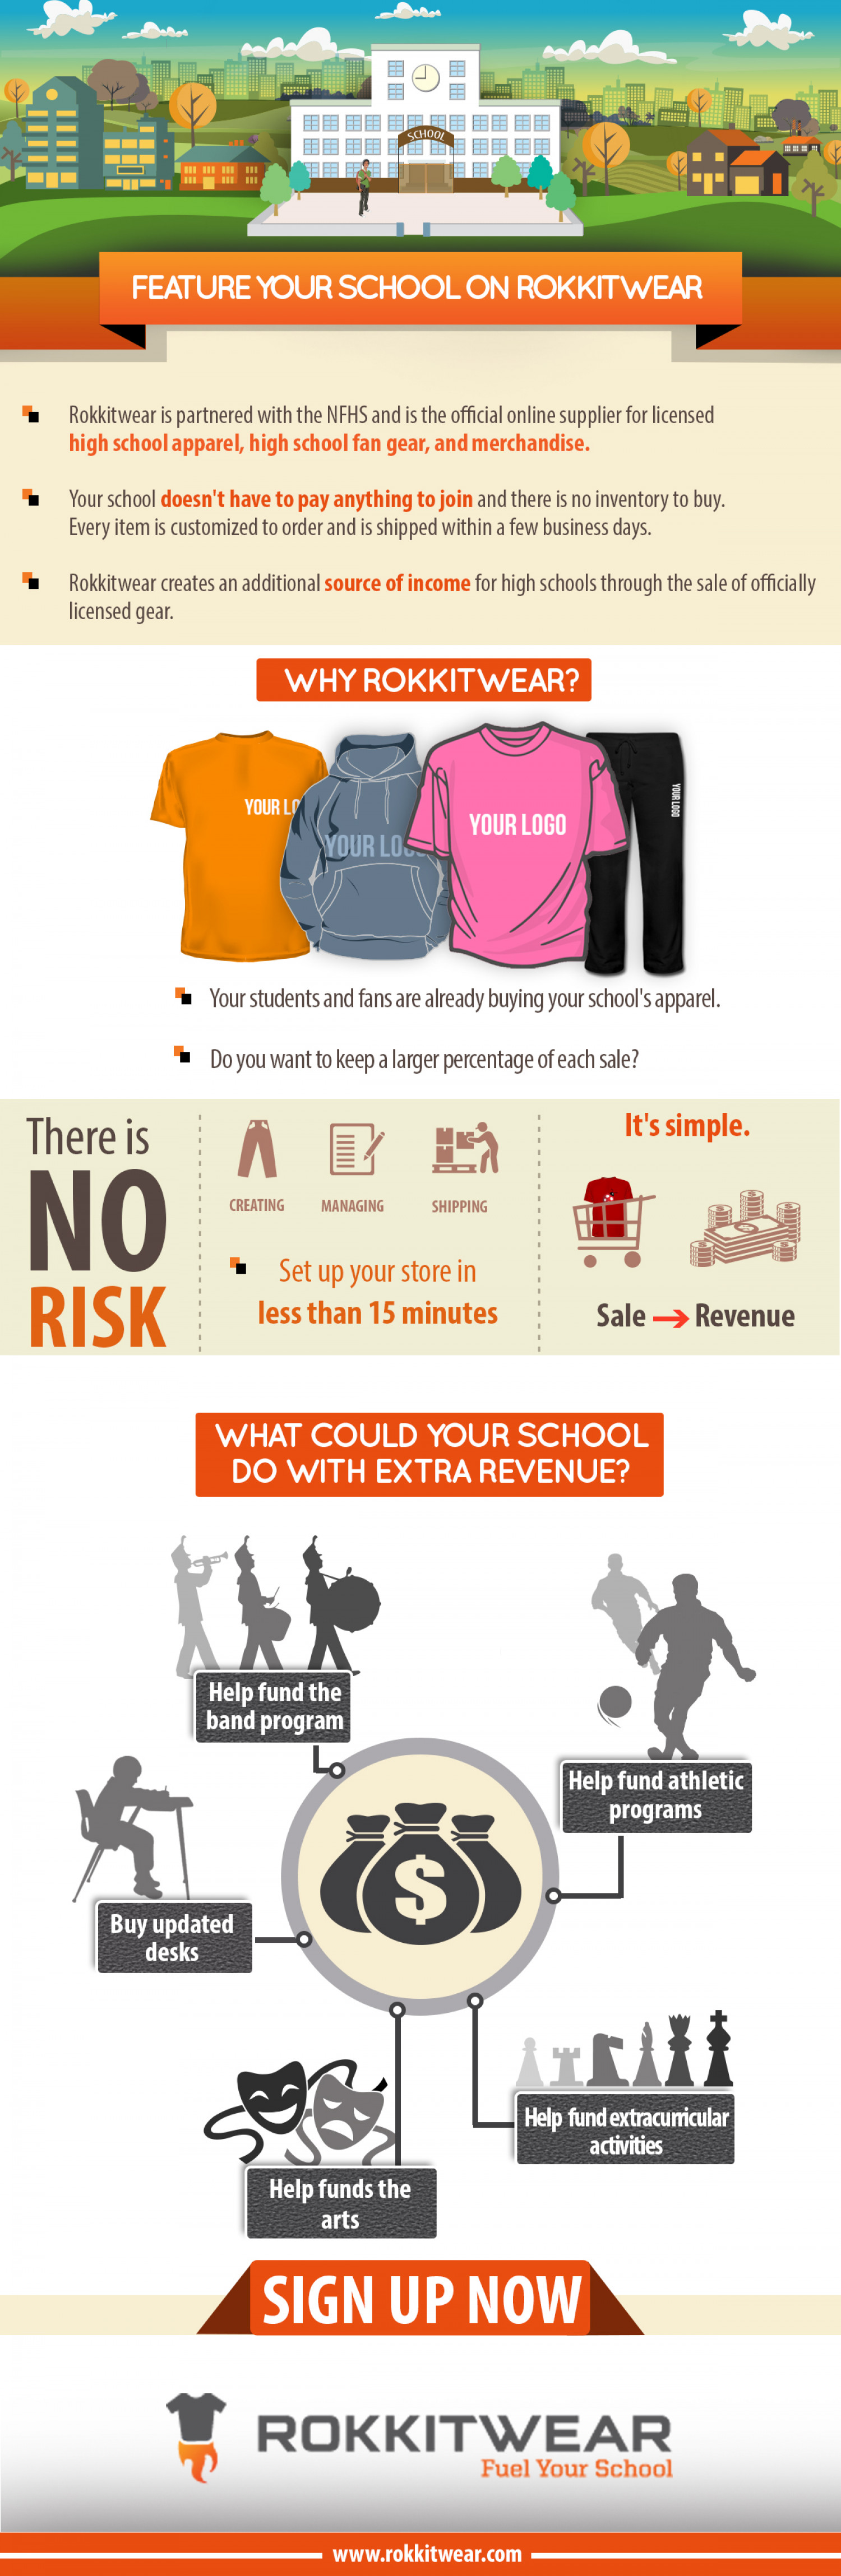 Feature Your High School On Rokkitwear Infographic